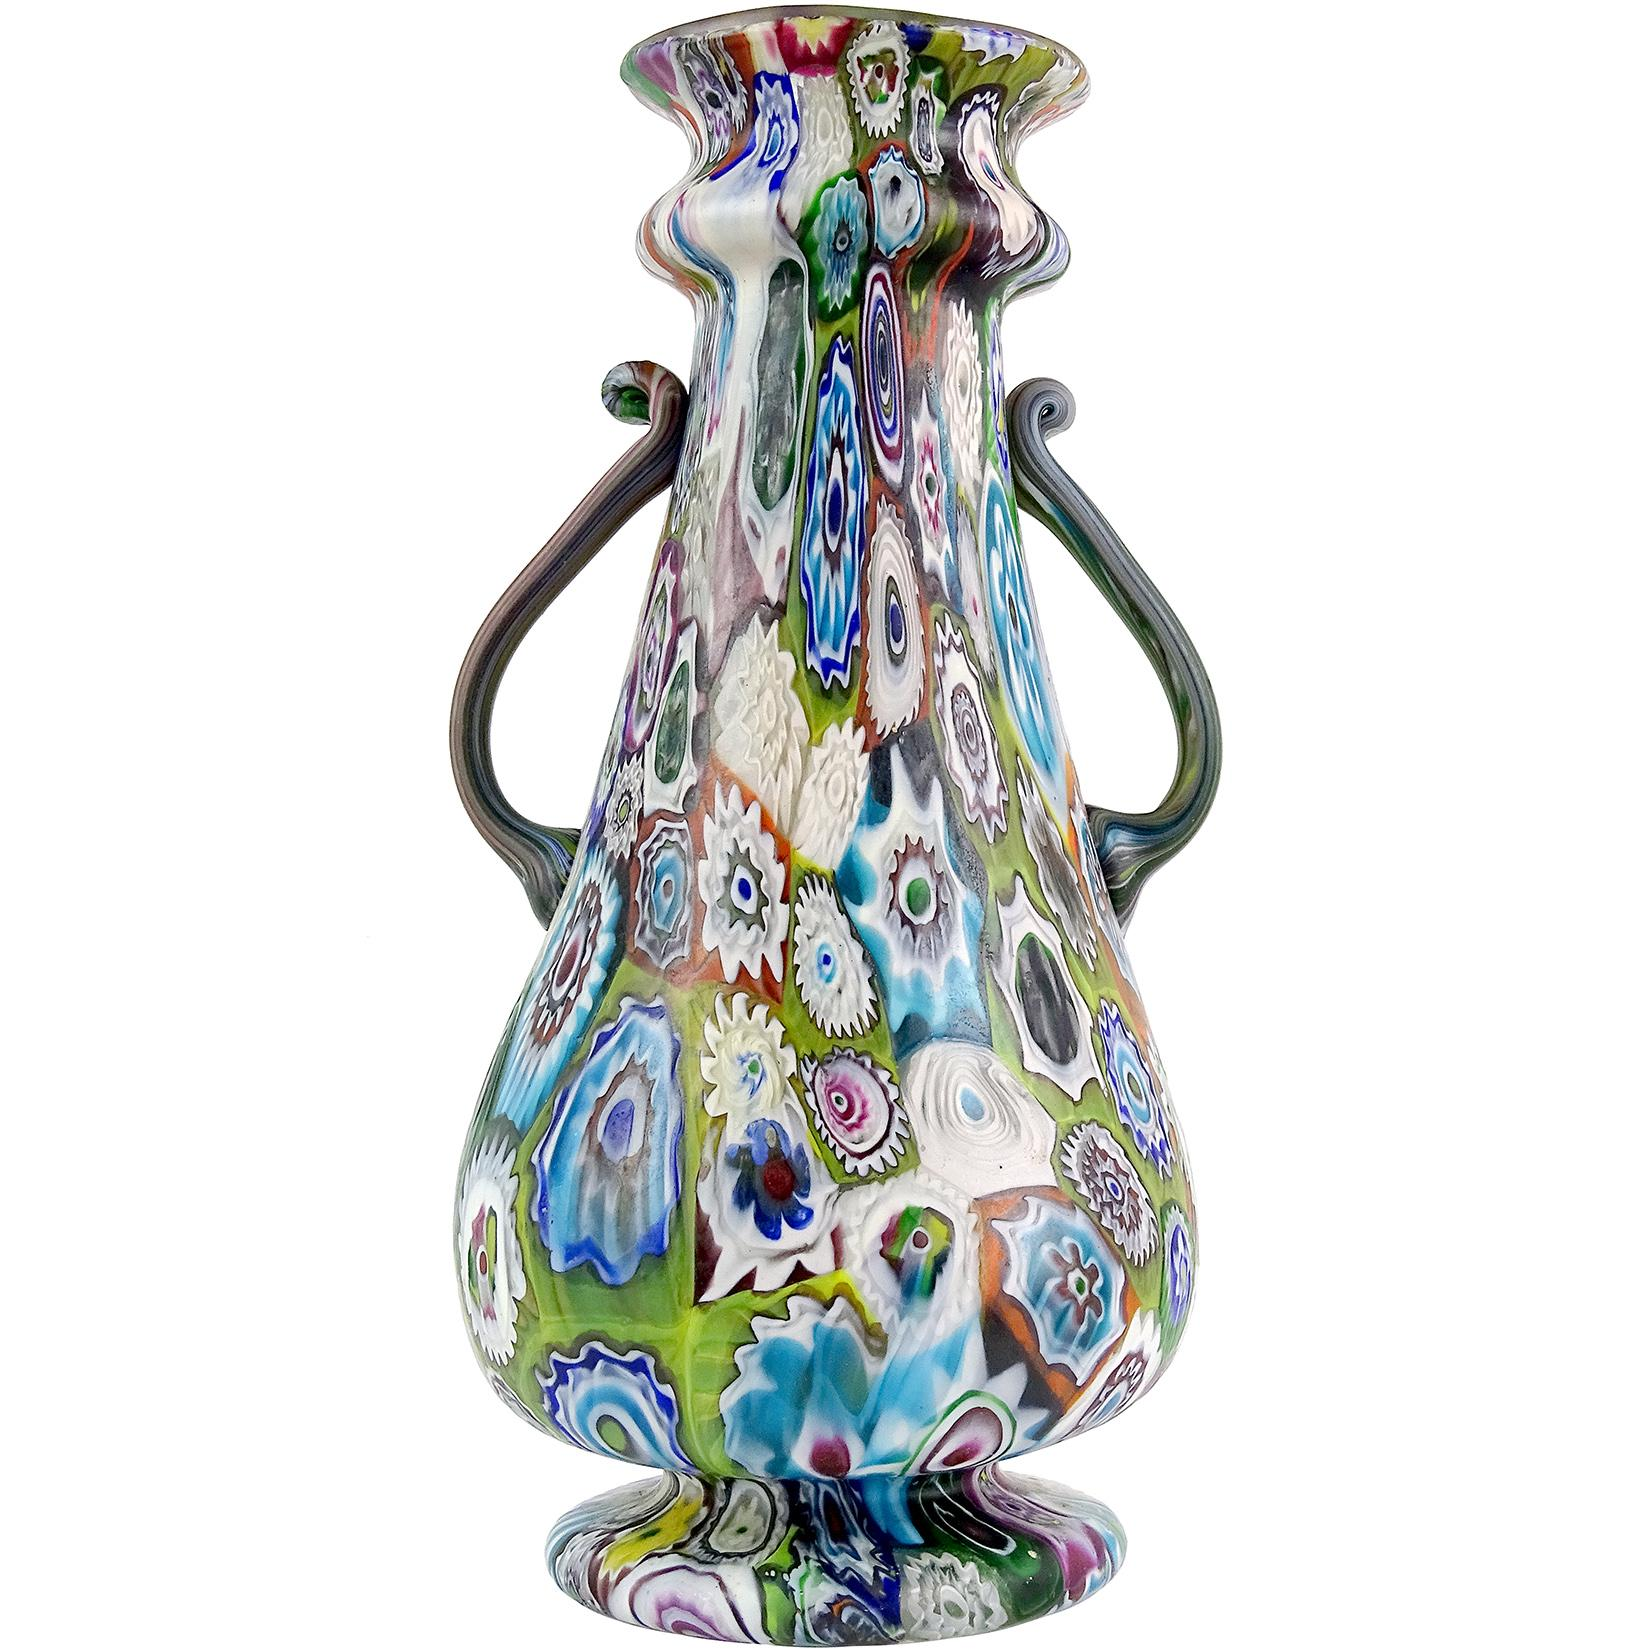 Fratelli Toso Murano Antique Millefiori Flowers Italian Art Glass Mosaic Vase